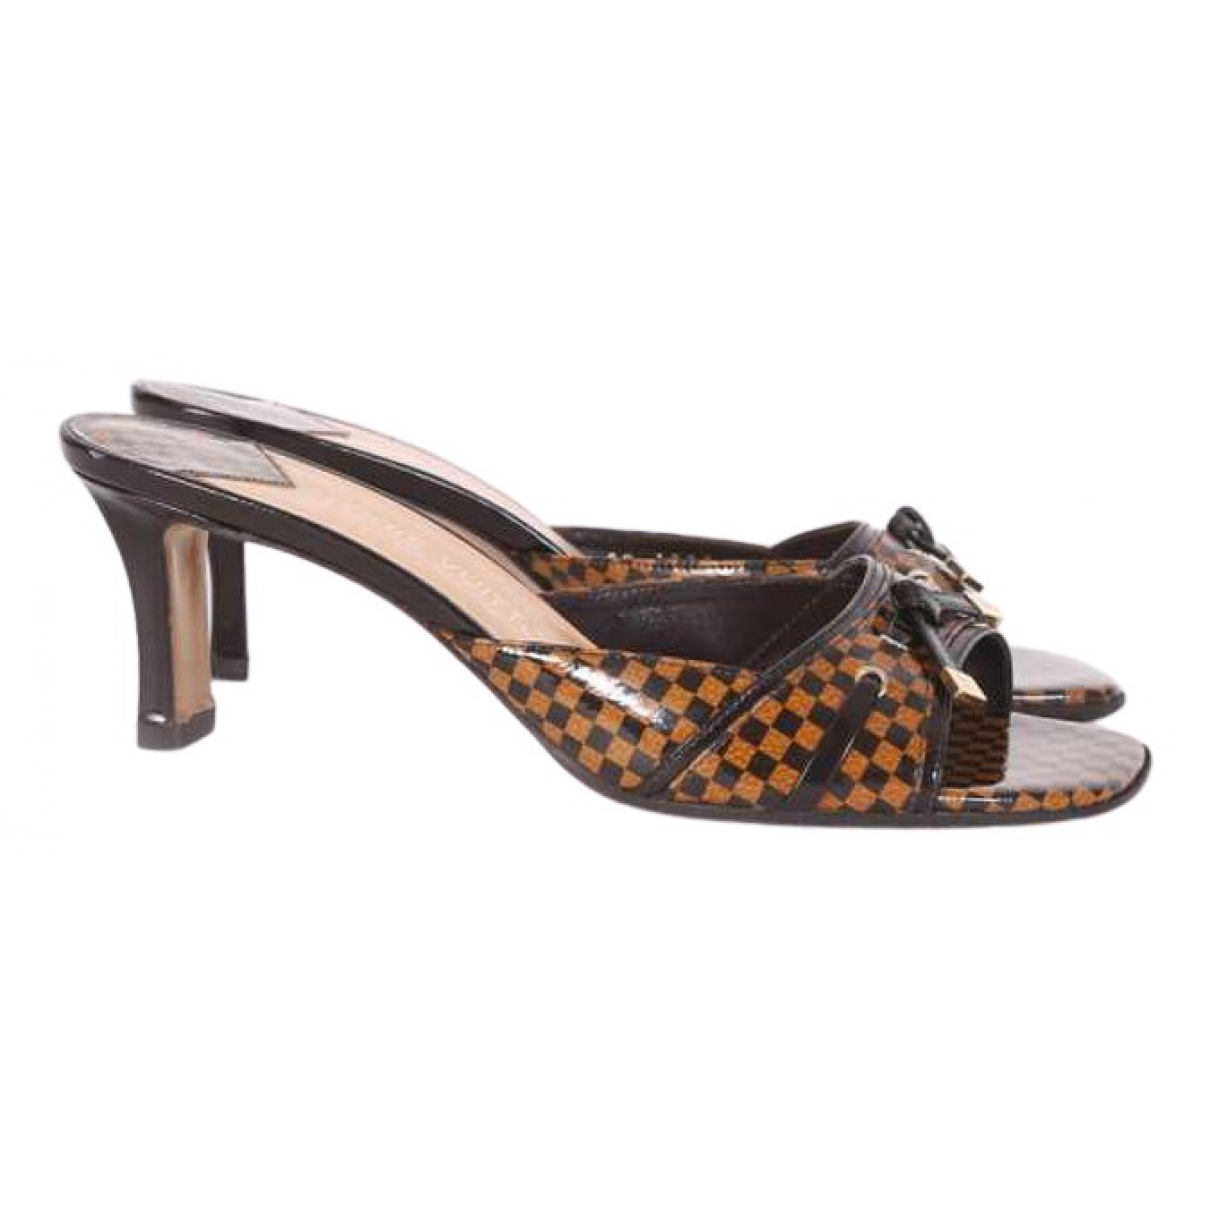 Louis Vuitton \N Brown Patent leather Sandals for Women 38 EU